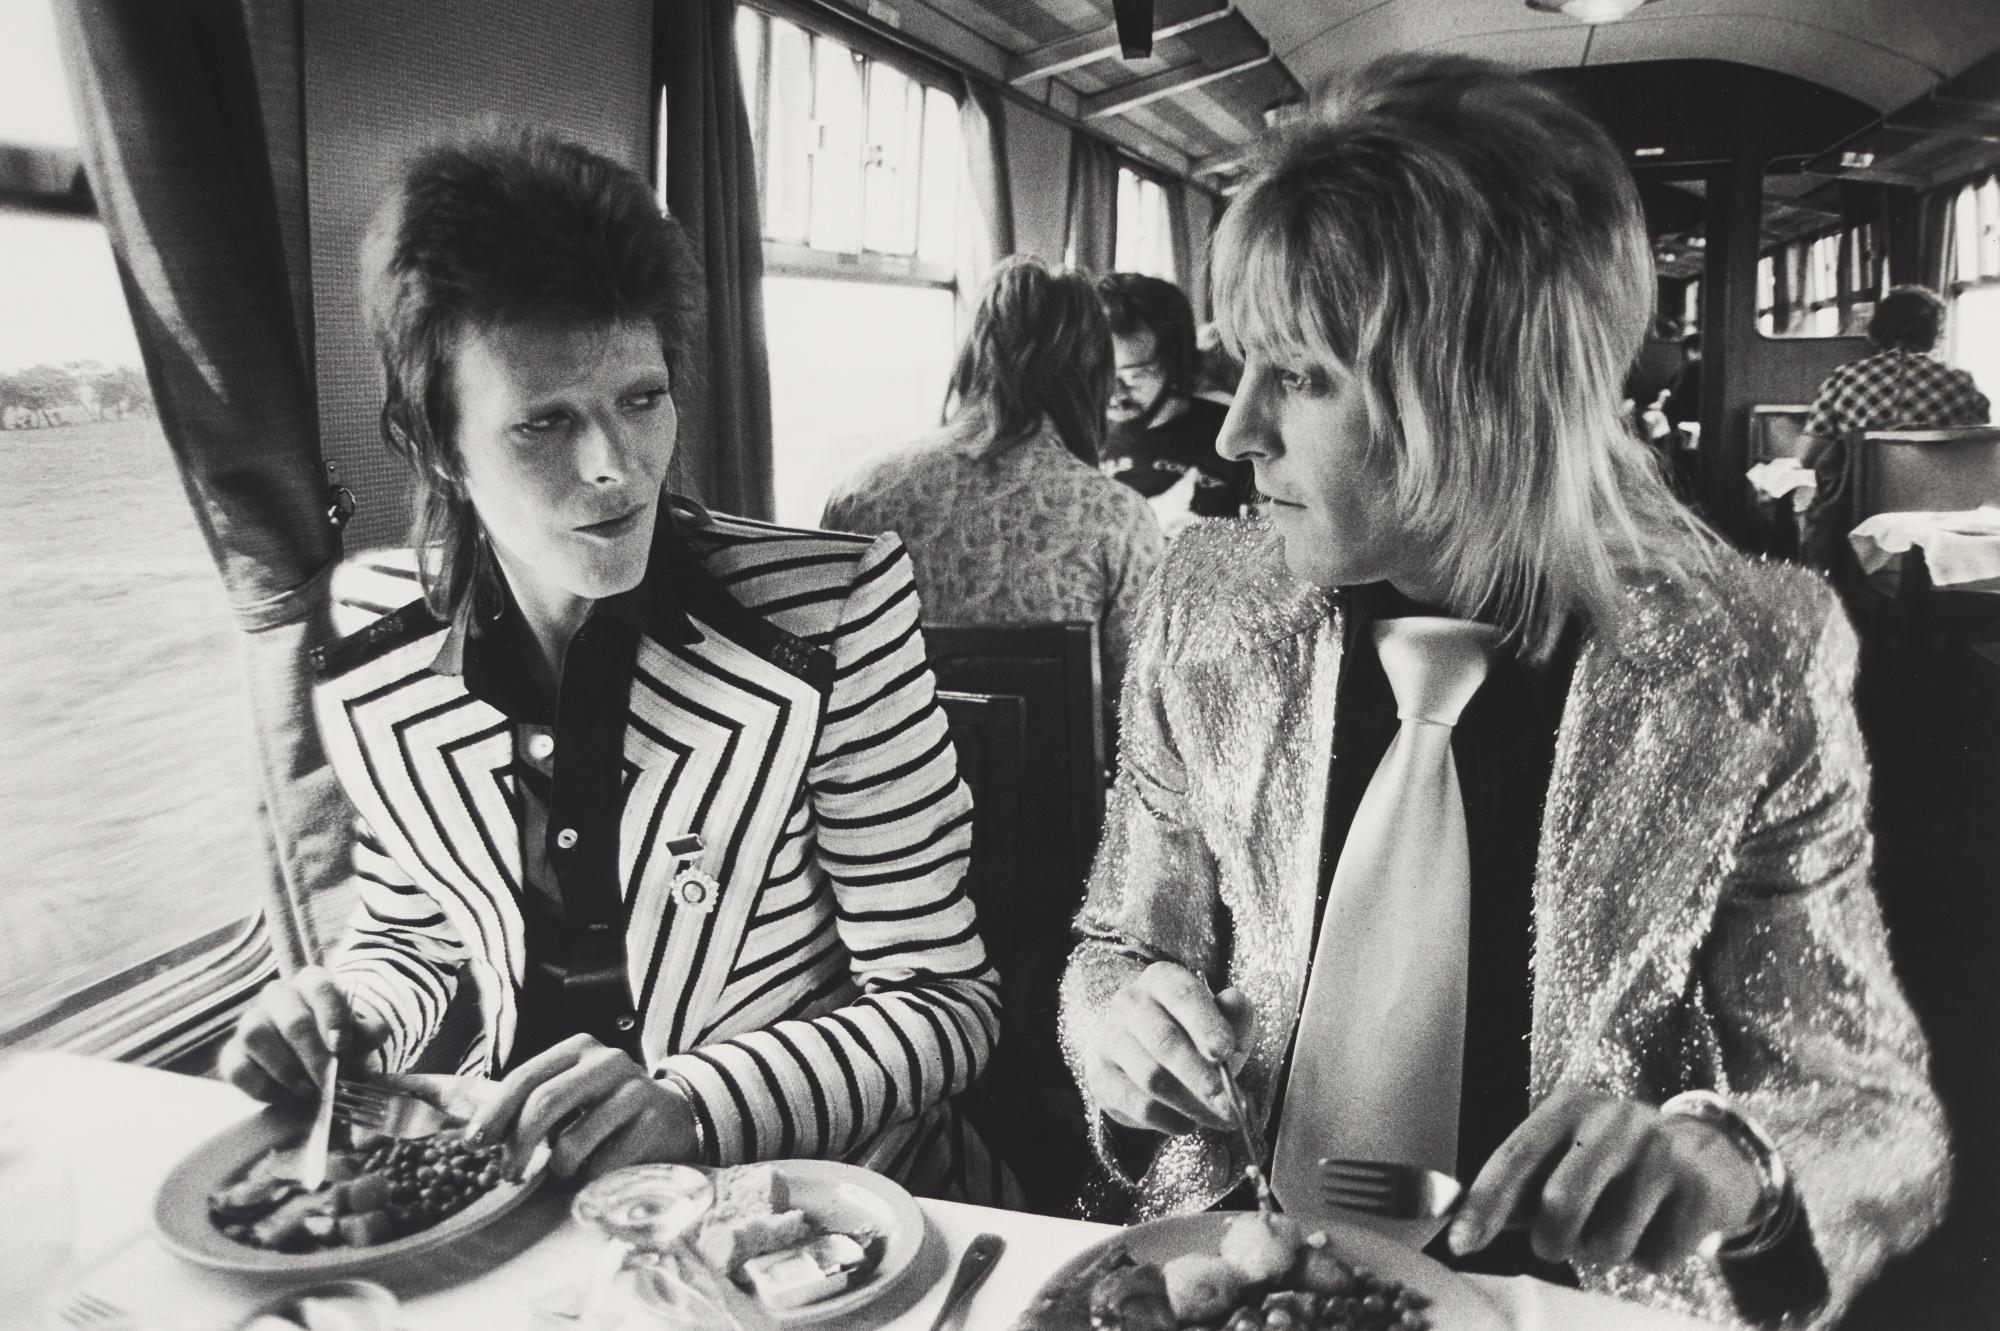 MICK ROCK | DAVID BOWIE AND MICK RONSON, LUNCH ON TRAIN TO ABERDEEN, SCOTLAND, 1973